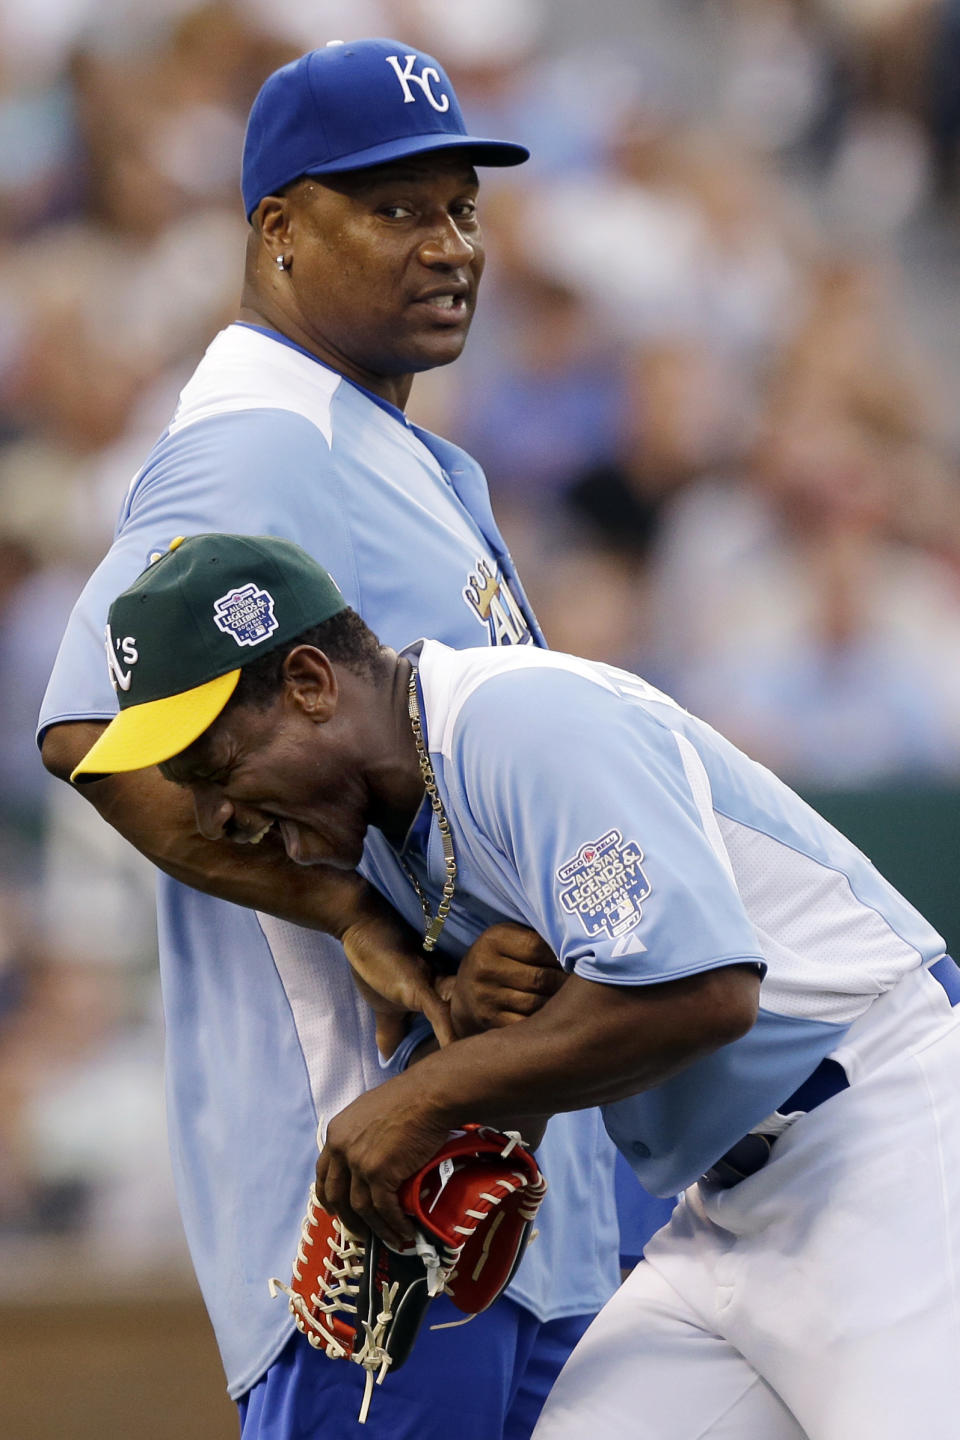 Hall of Famer Ricky Henderson, bottom, laughs with former baseball and football star Bo Jackson during the first inning of the MLB All-Star celebrity softball game, Sunday, July 8, 2012, in Kansas City, Mo. (AP Photo/Charlie Riedel)